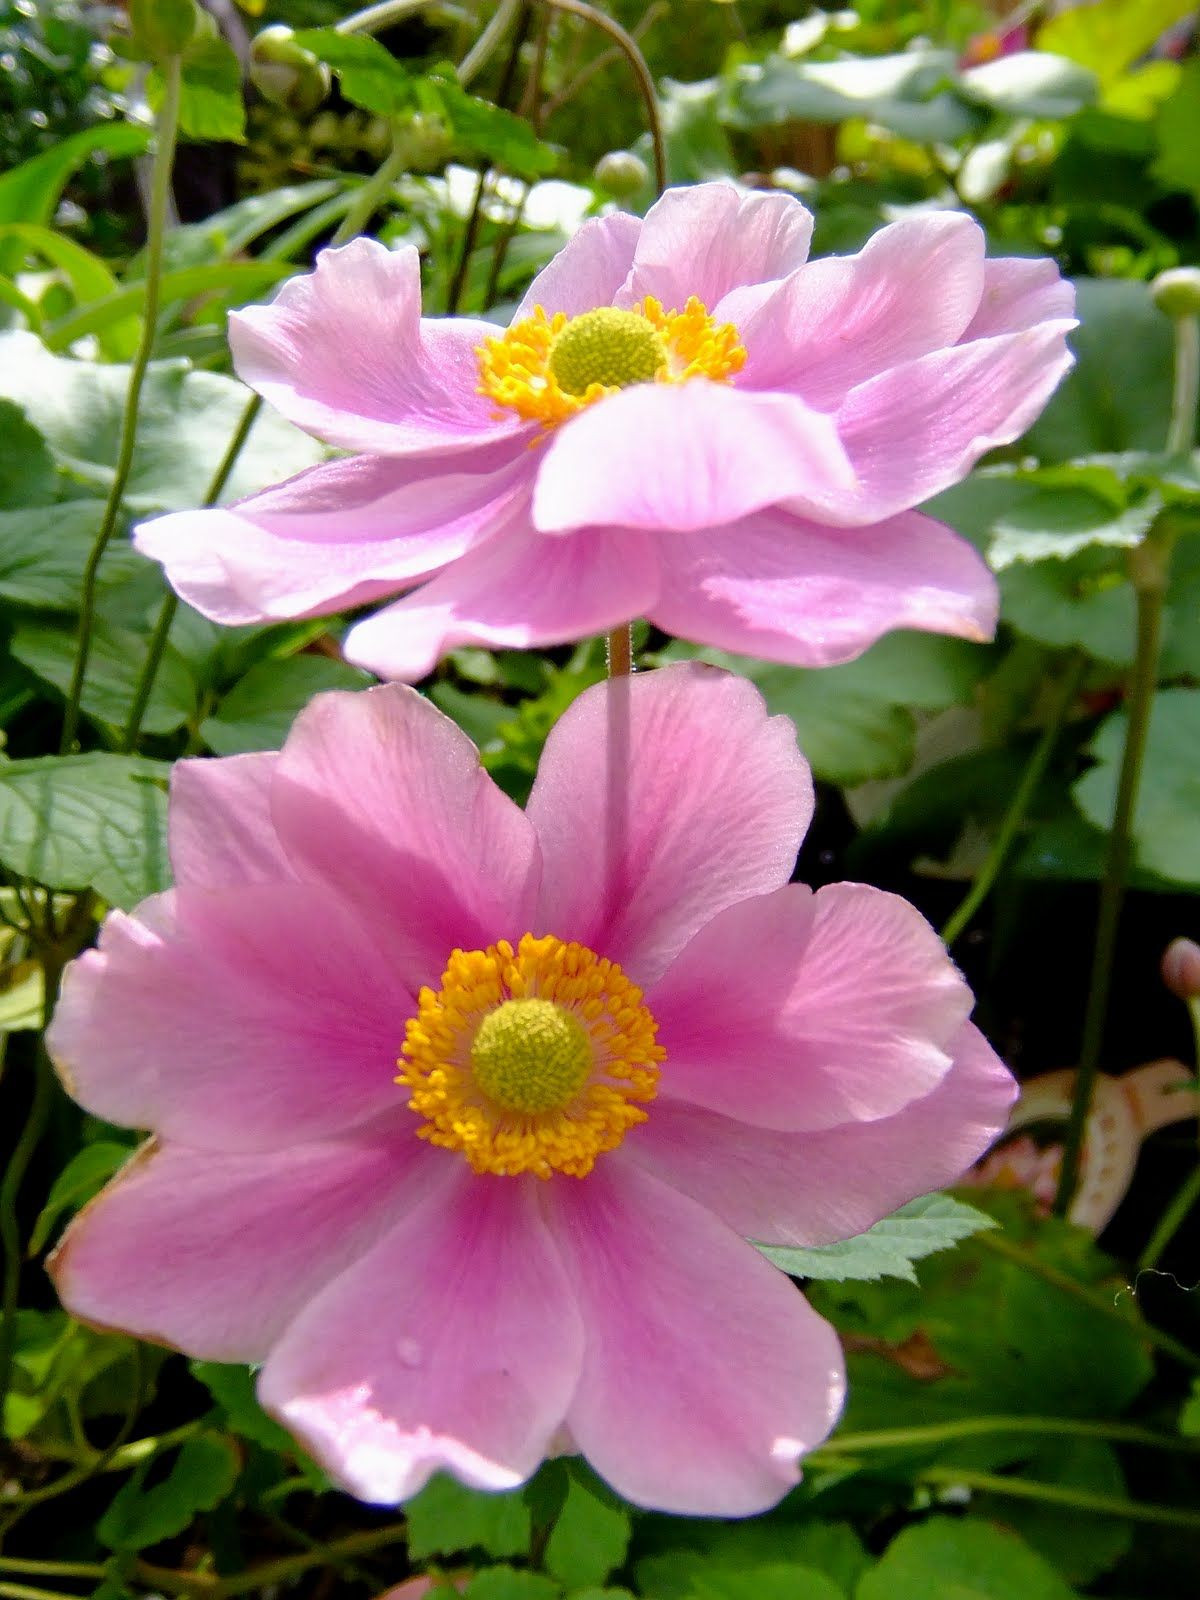 Clarkia Flower New Anemone Nature Scapes and Miracles Pinterest